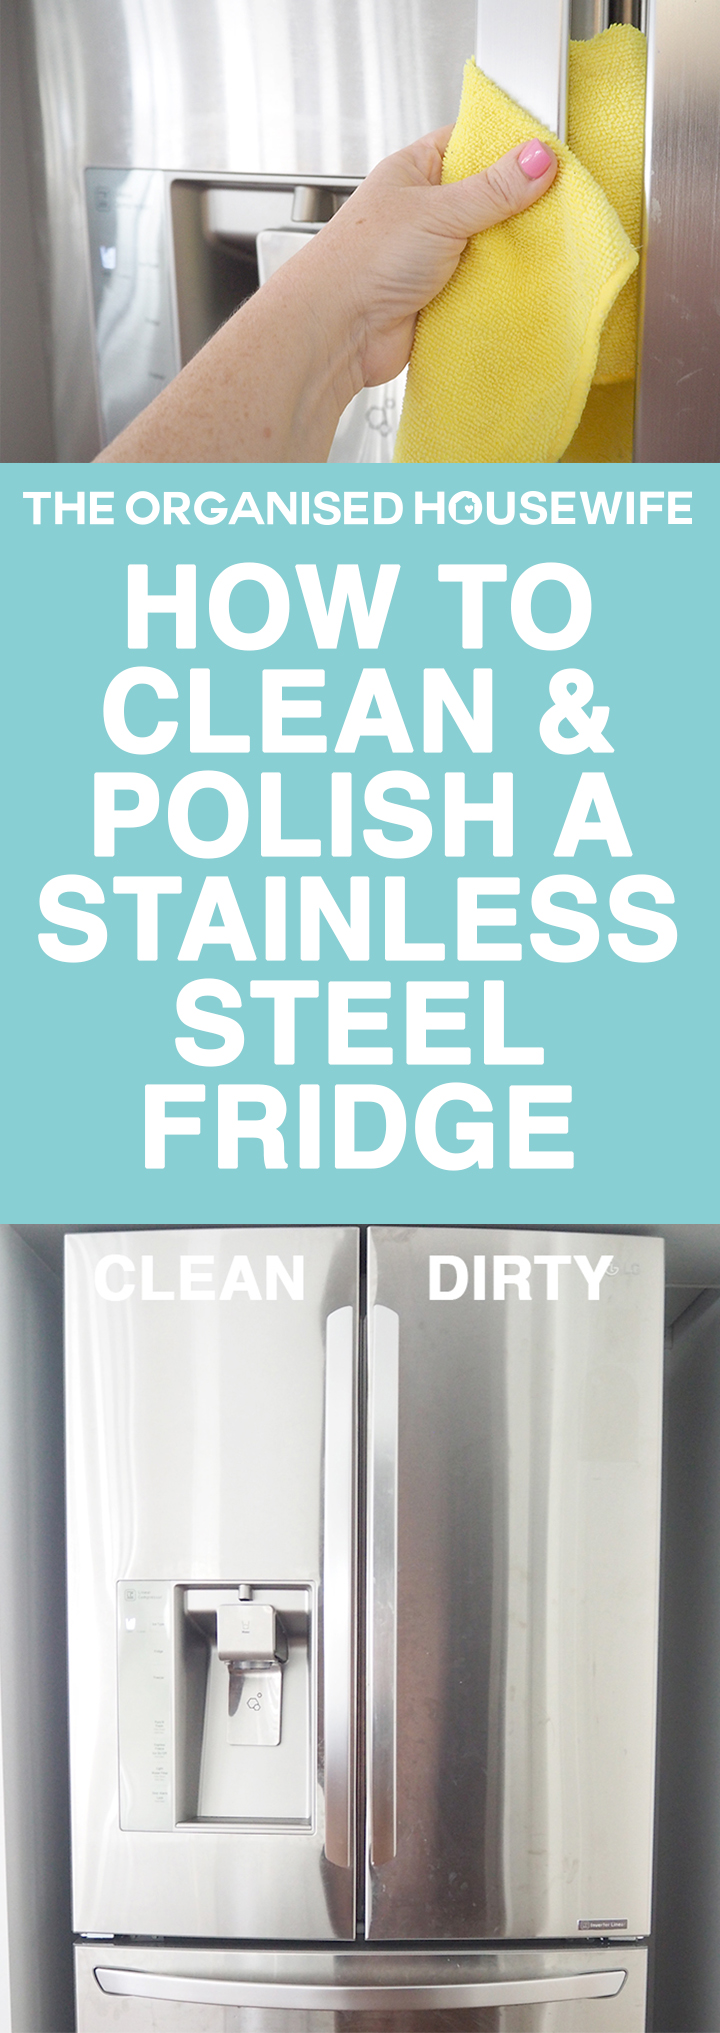 You can purchase stainless steel cleaner from the supermarket. But instead, eliminate the use of chemicals by making this very simple, inexpensive and effective homemade stainless steel cleaner using ingredients you can find in your pantry!